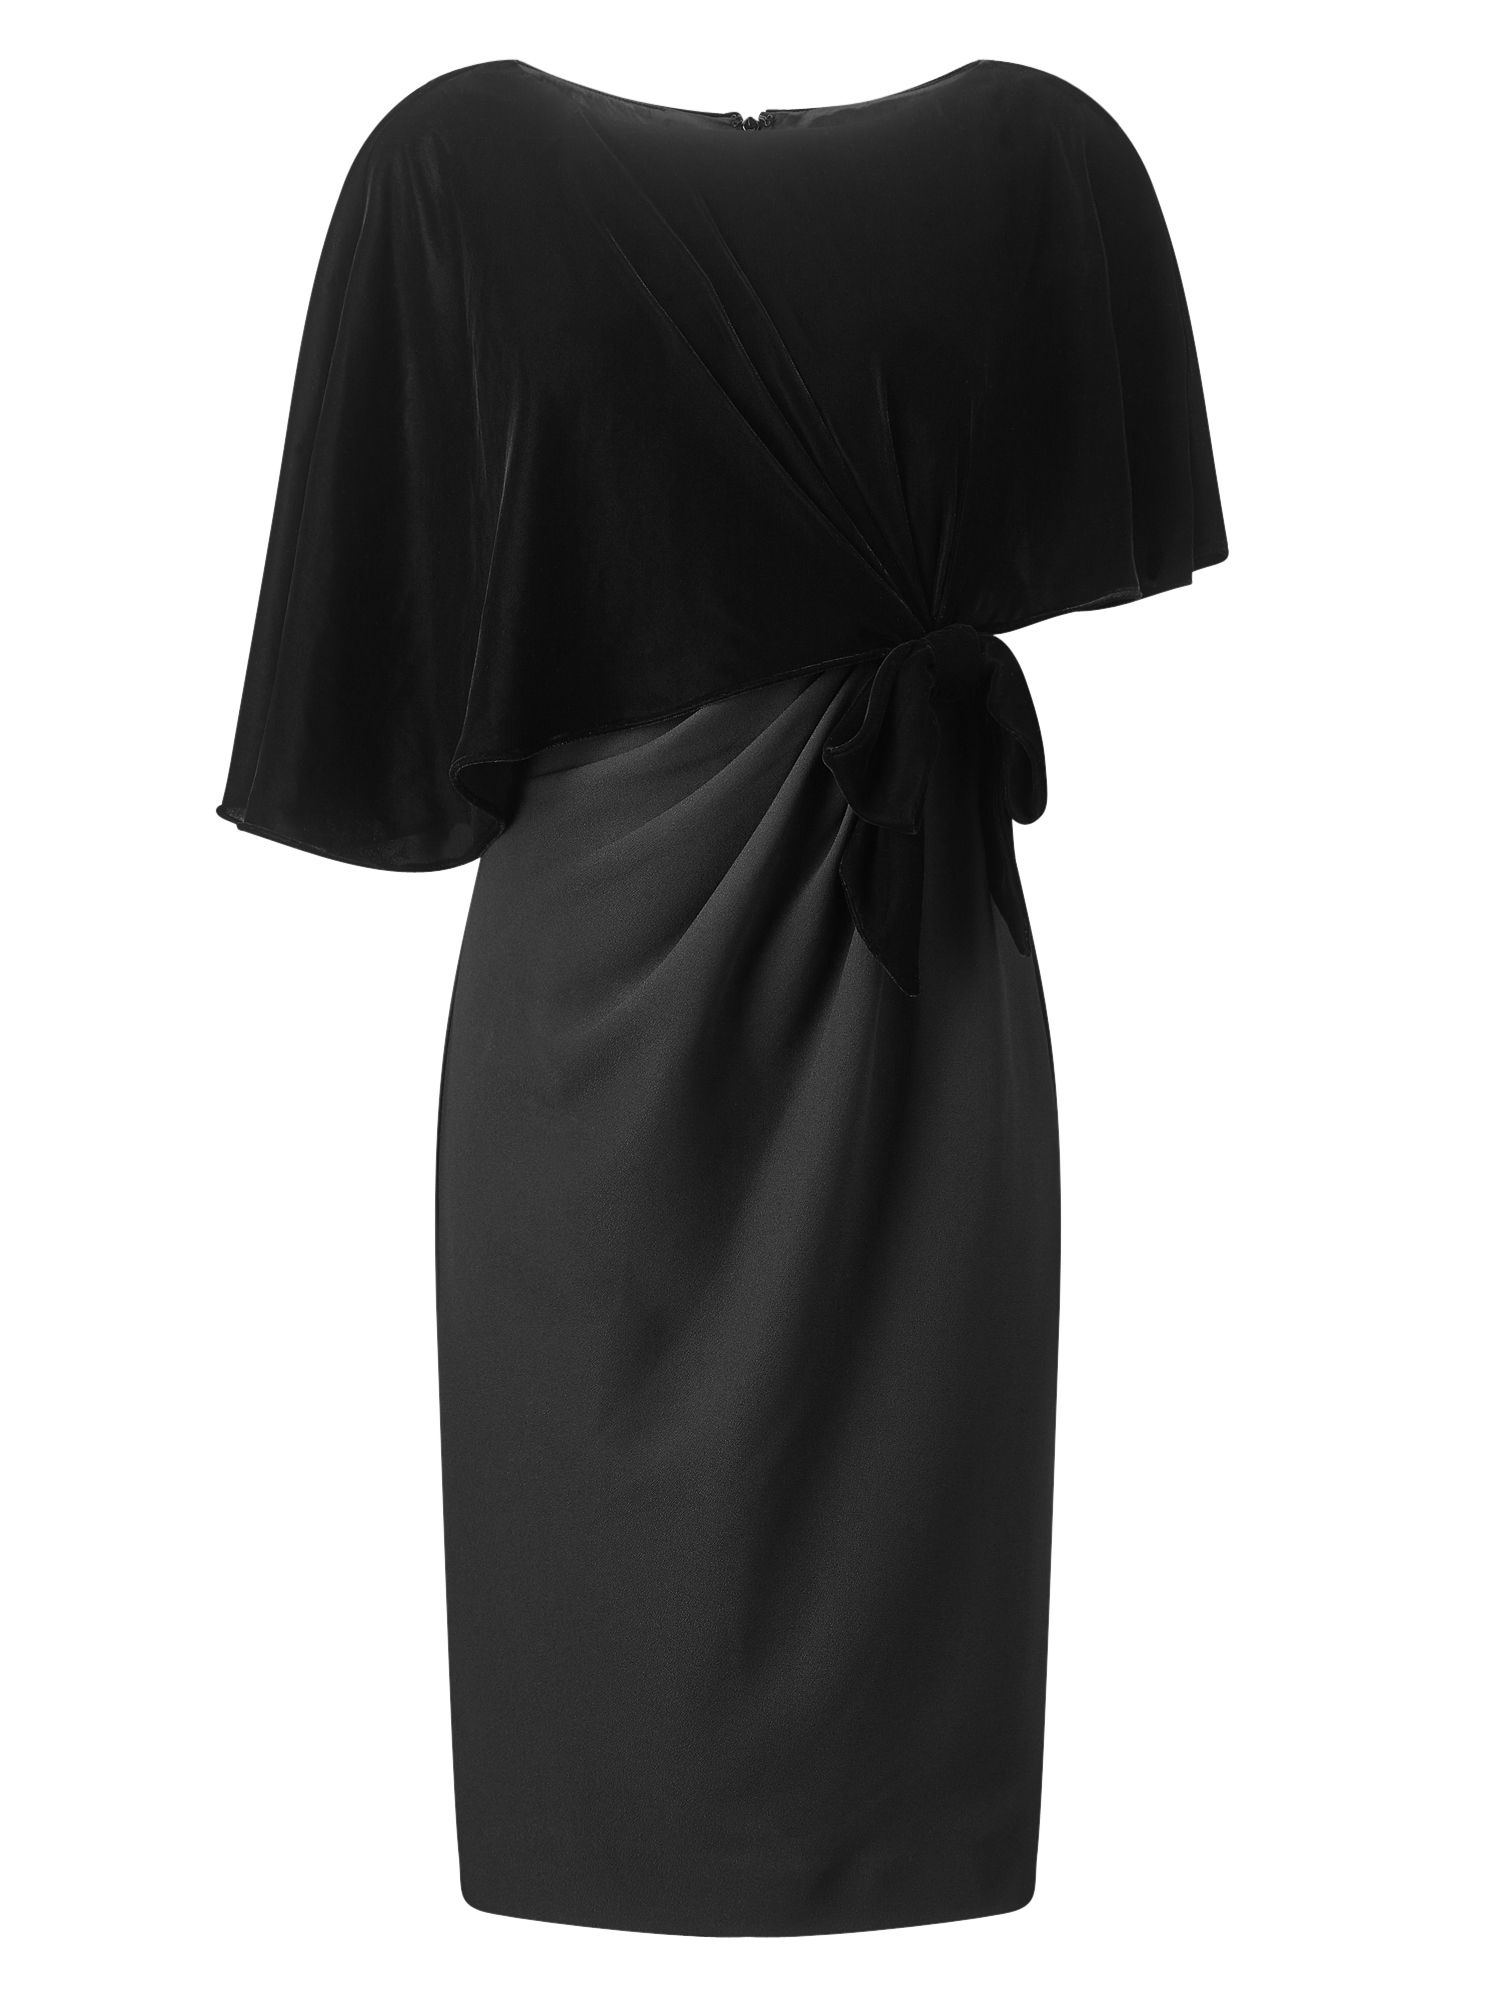 Jacques Vert VELVET SATIN CREPE DRESS, Black